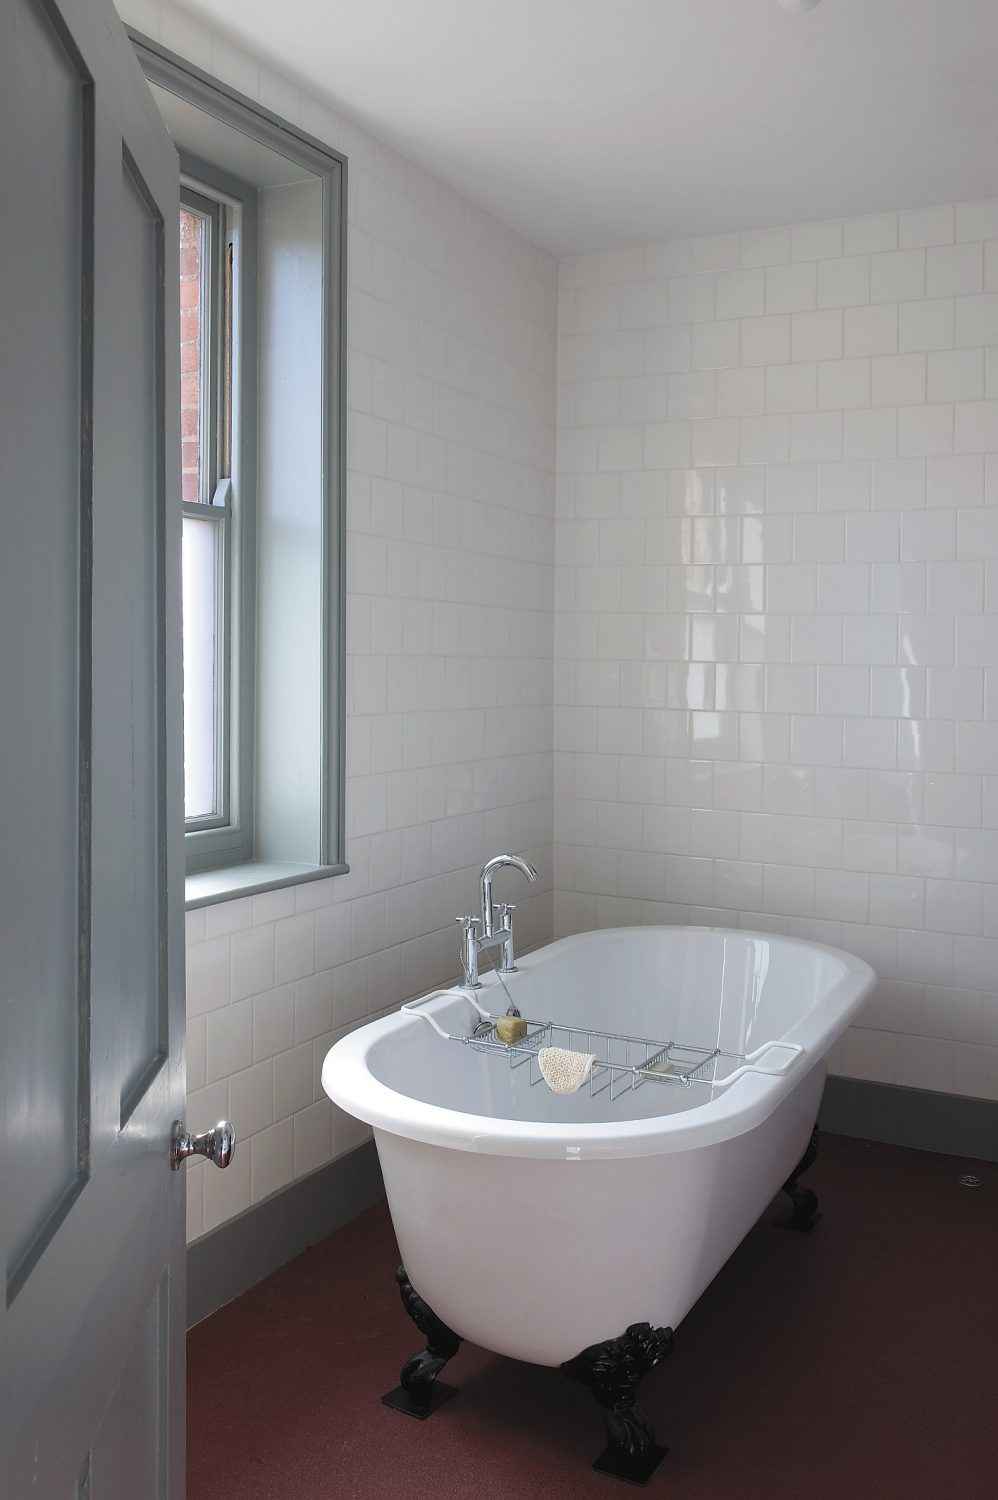 the white tiled bathroom has a free-standing bath and walk-in shower